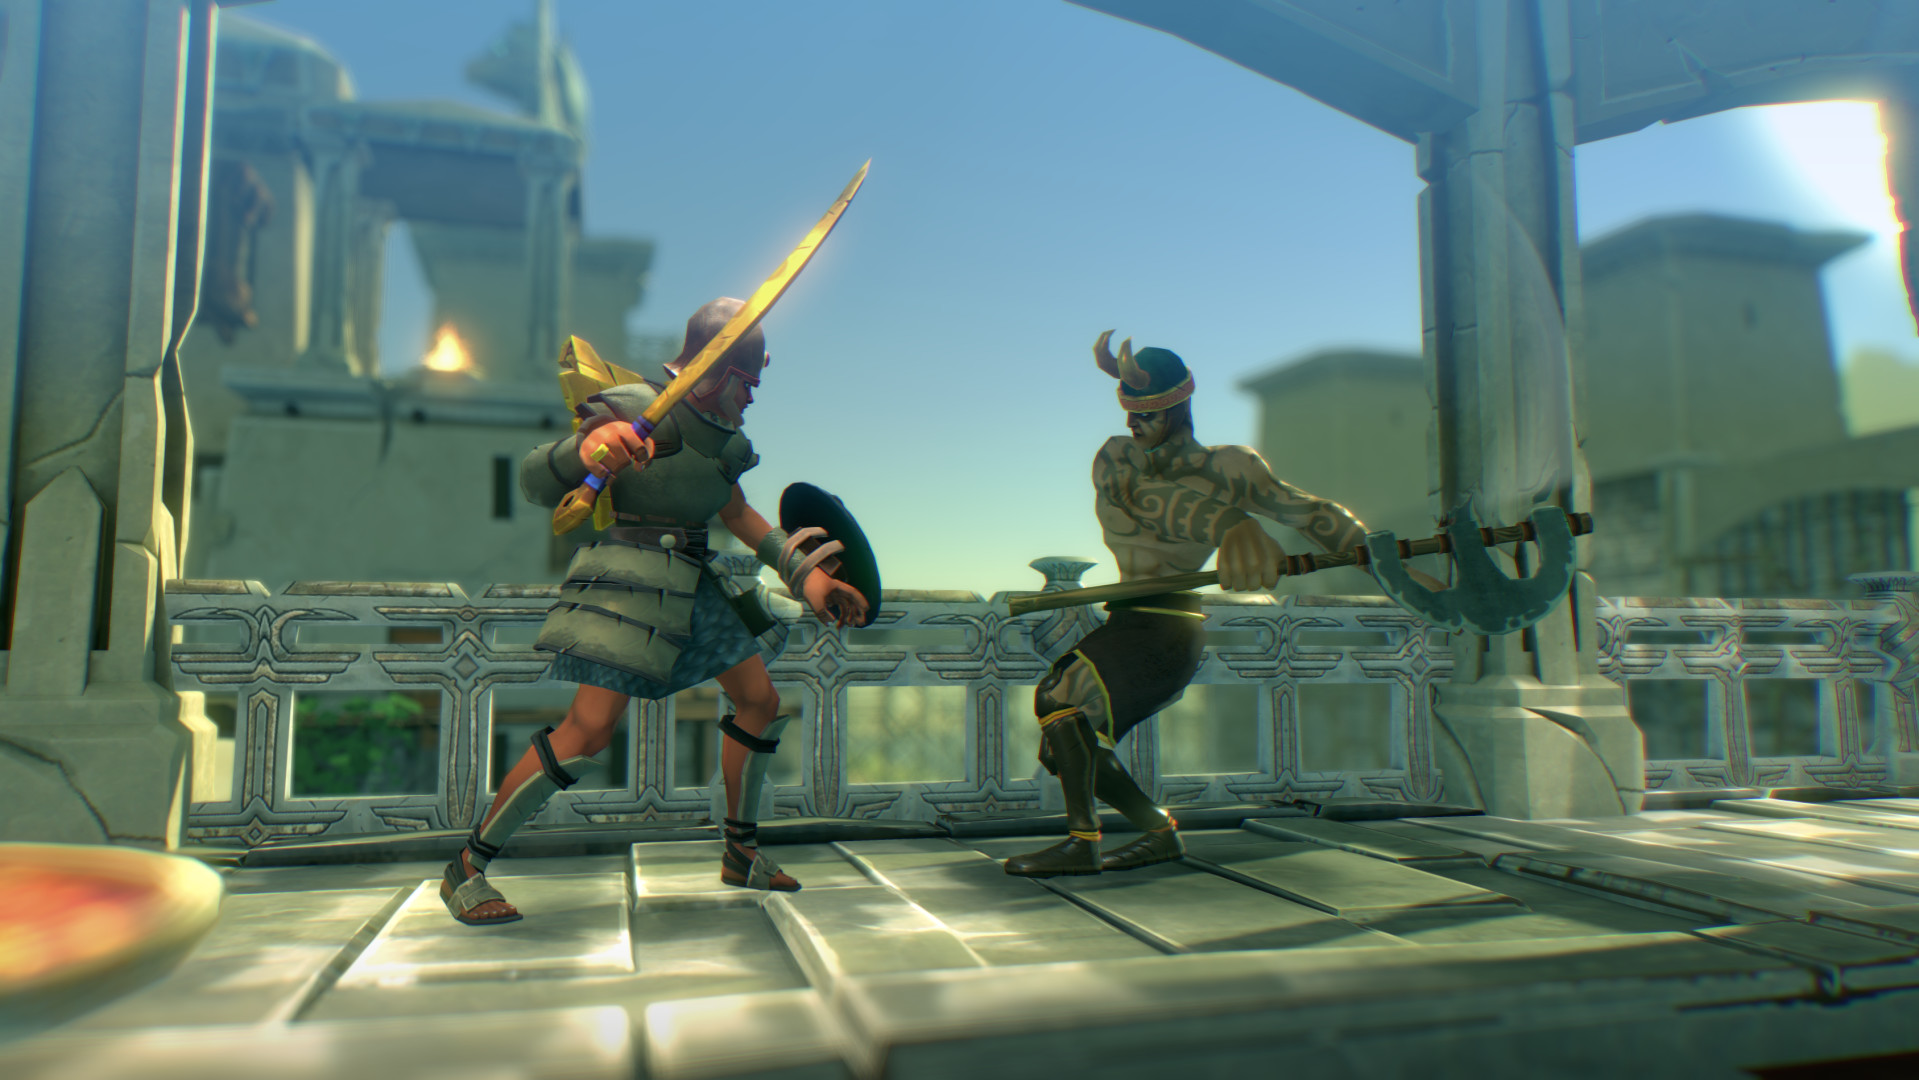 Pharaonic screenshot 2